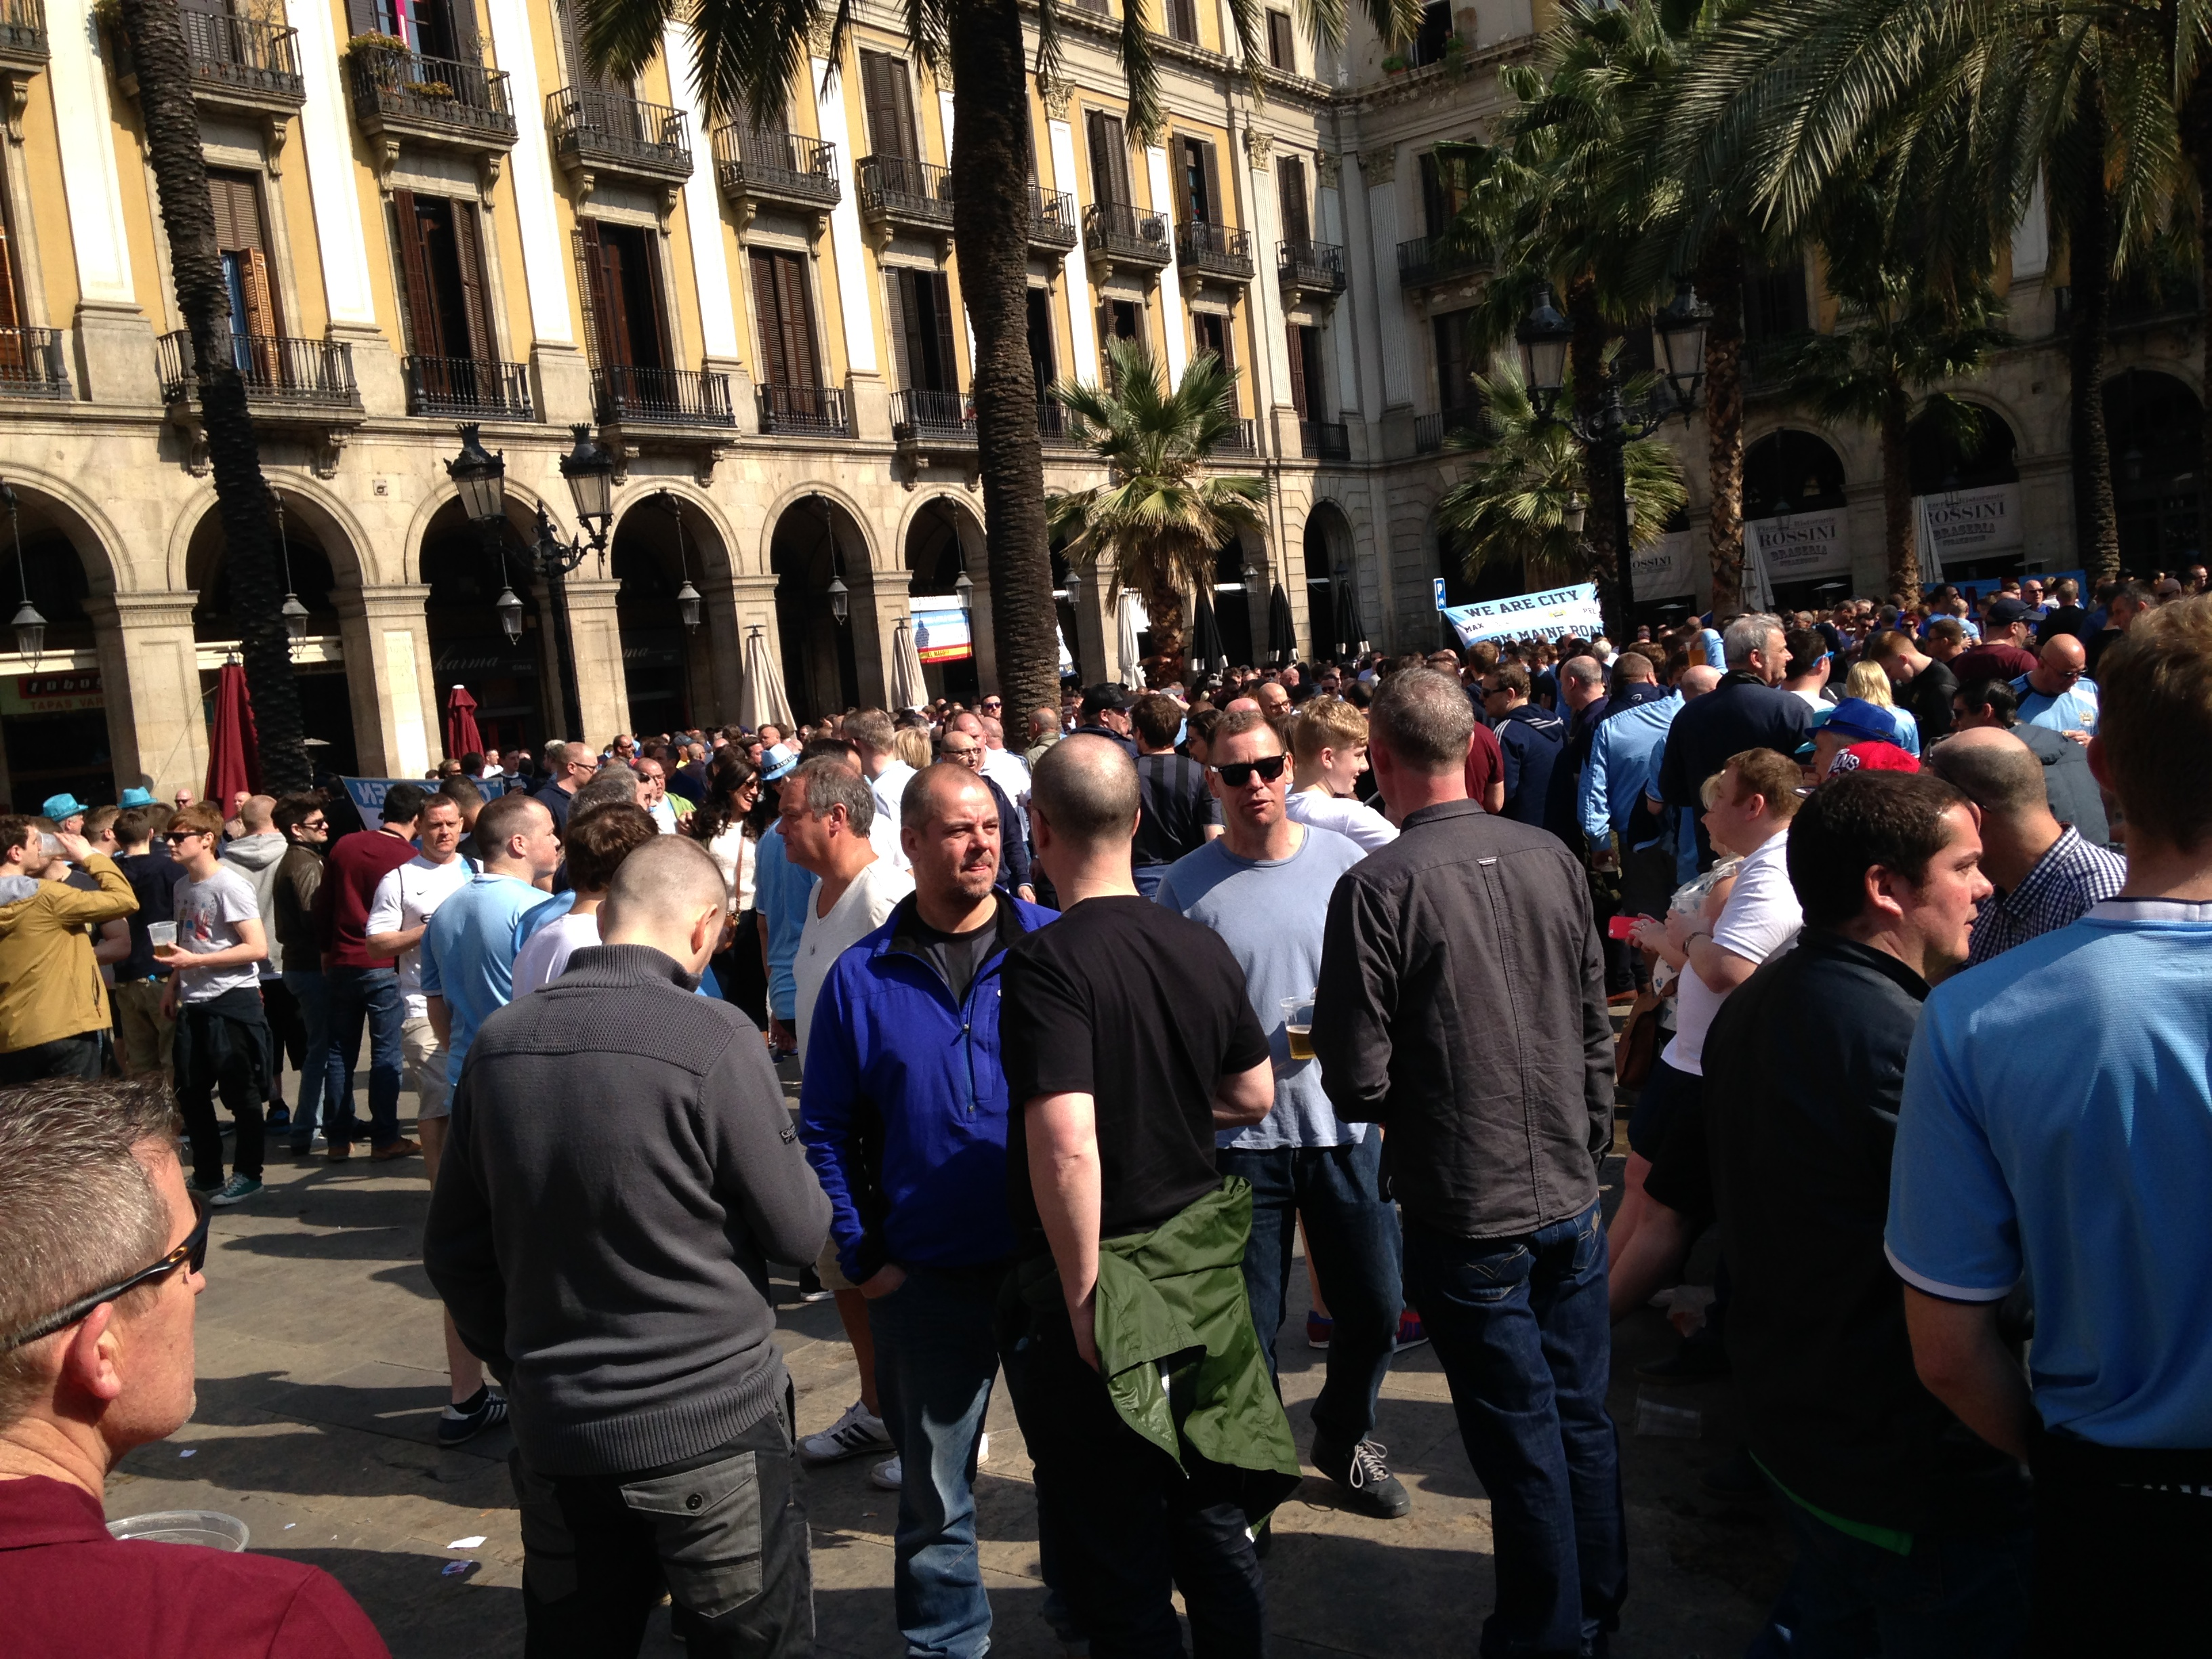 Pre-match - Afternoon drinks and revelry off Las Ramblas...but no trouble